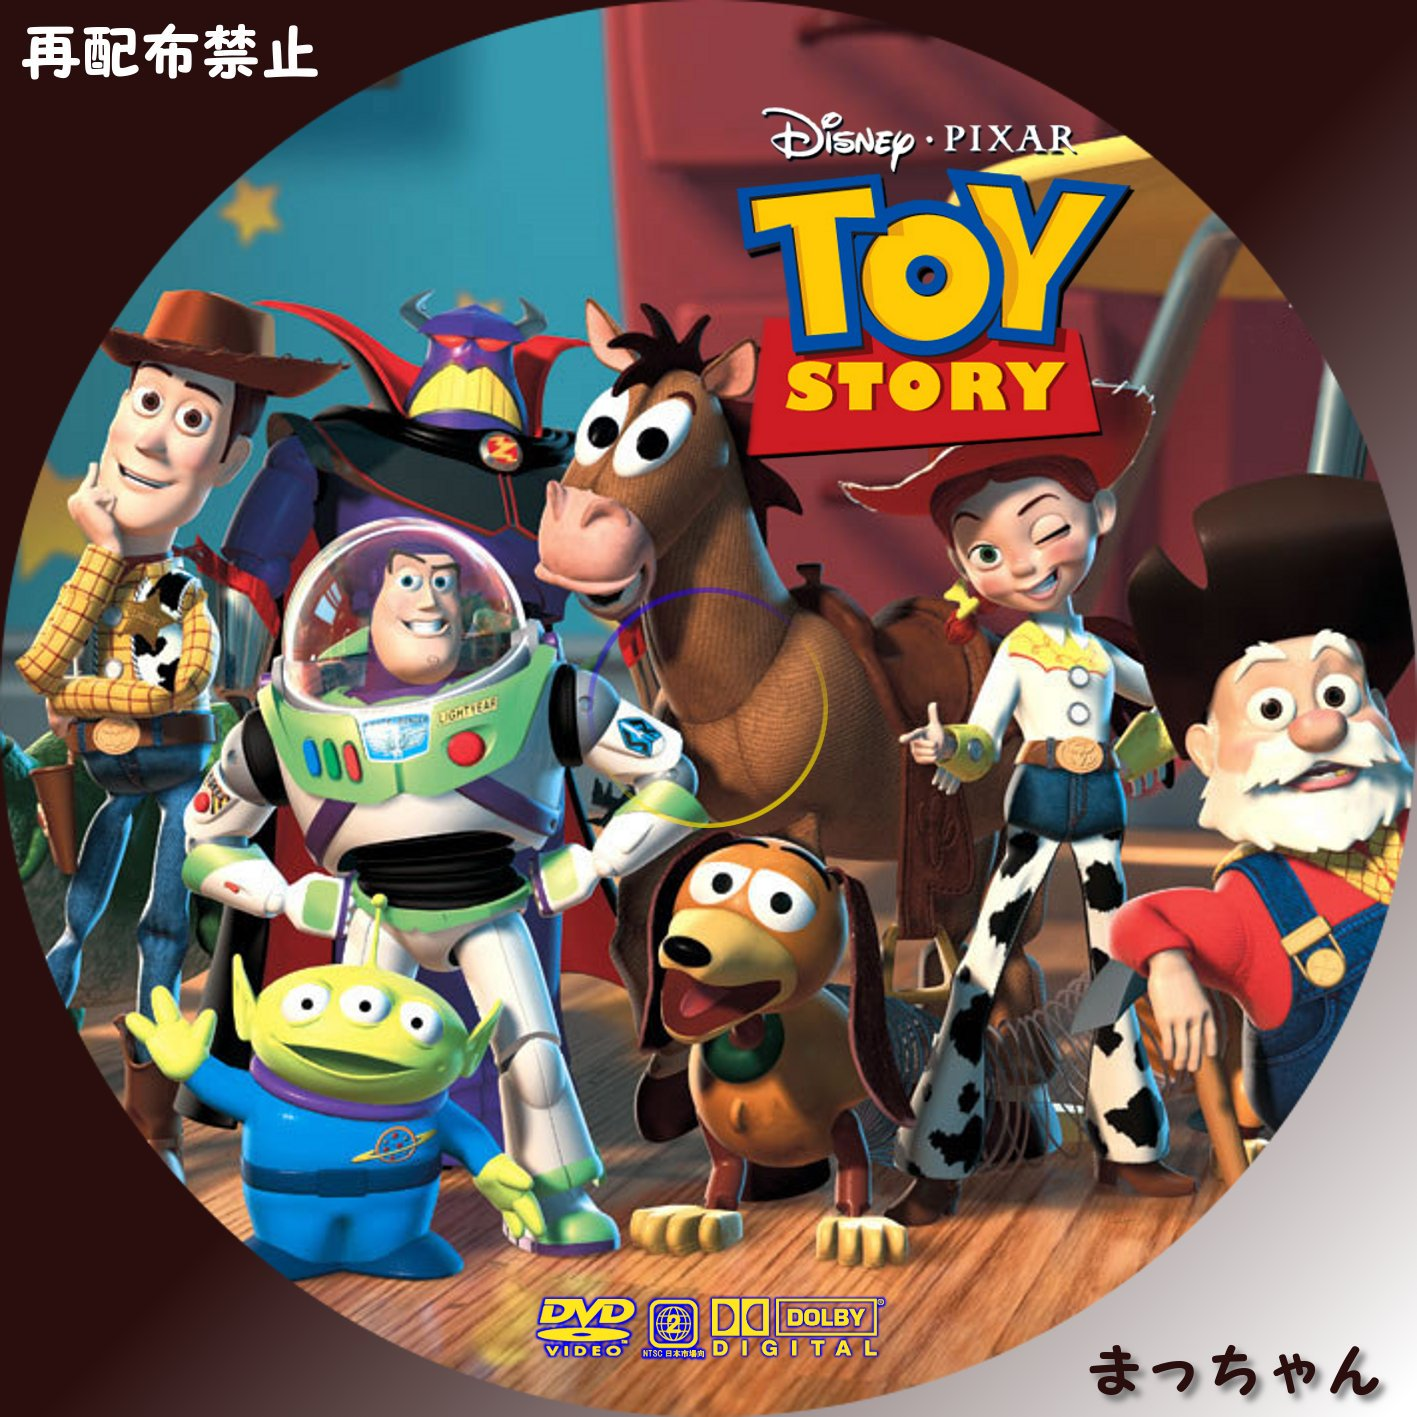 gay toy story 2